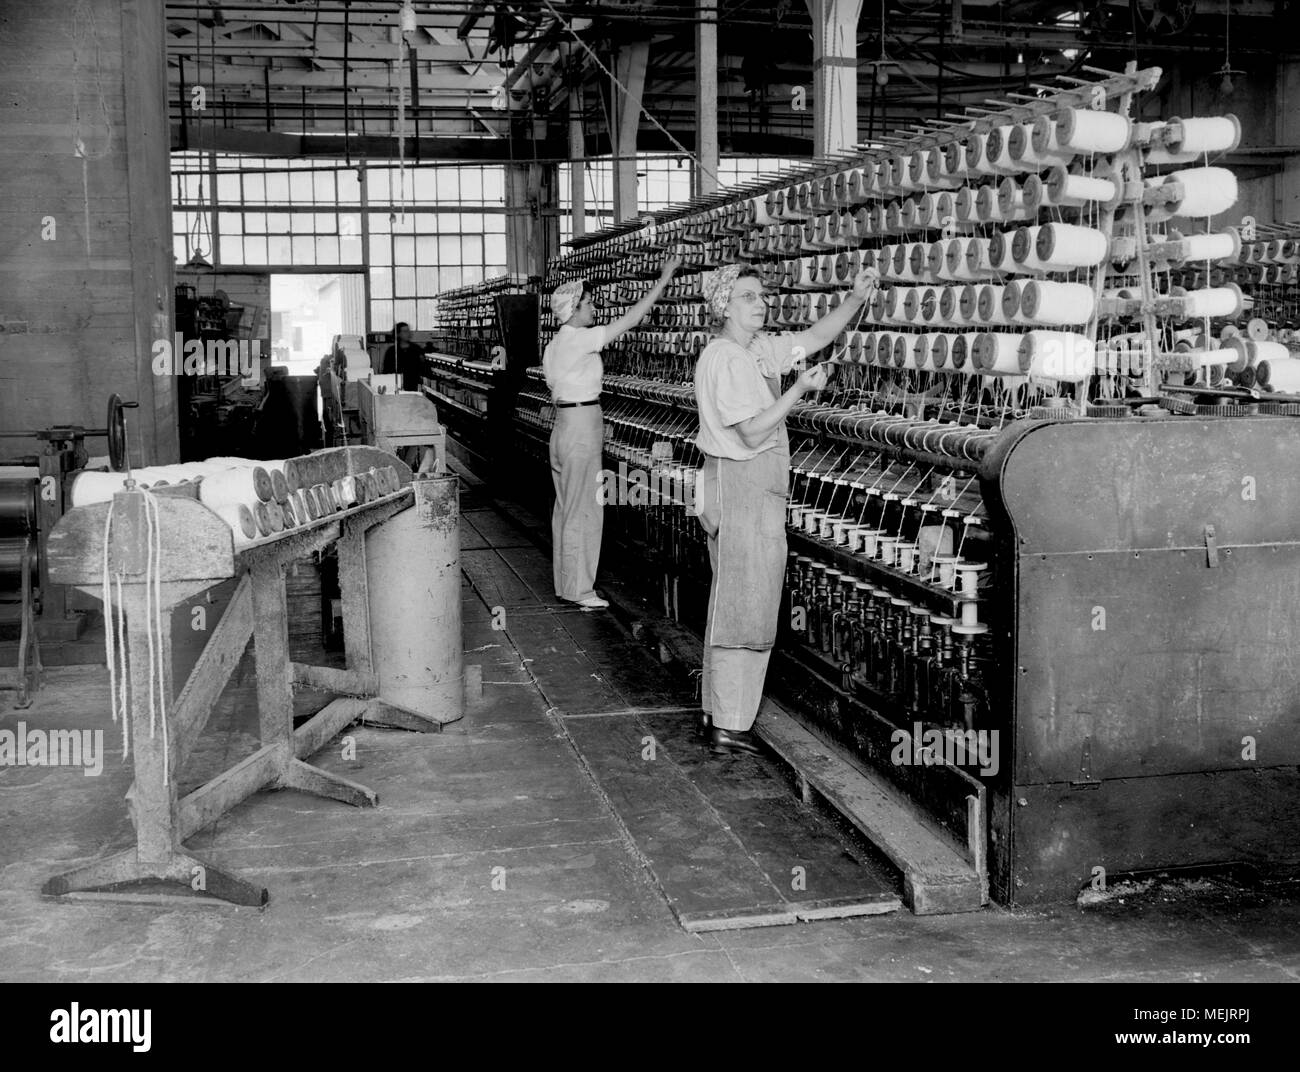 A worker watches an early industrial plastic manufacturing process in a California factory, ca. 1946. - Stock Image